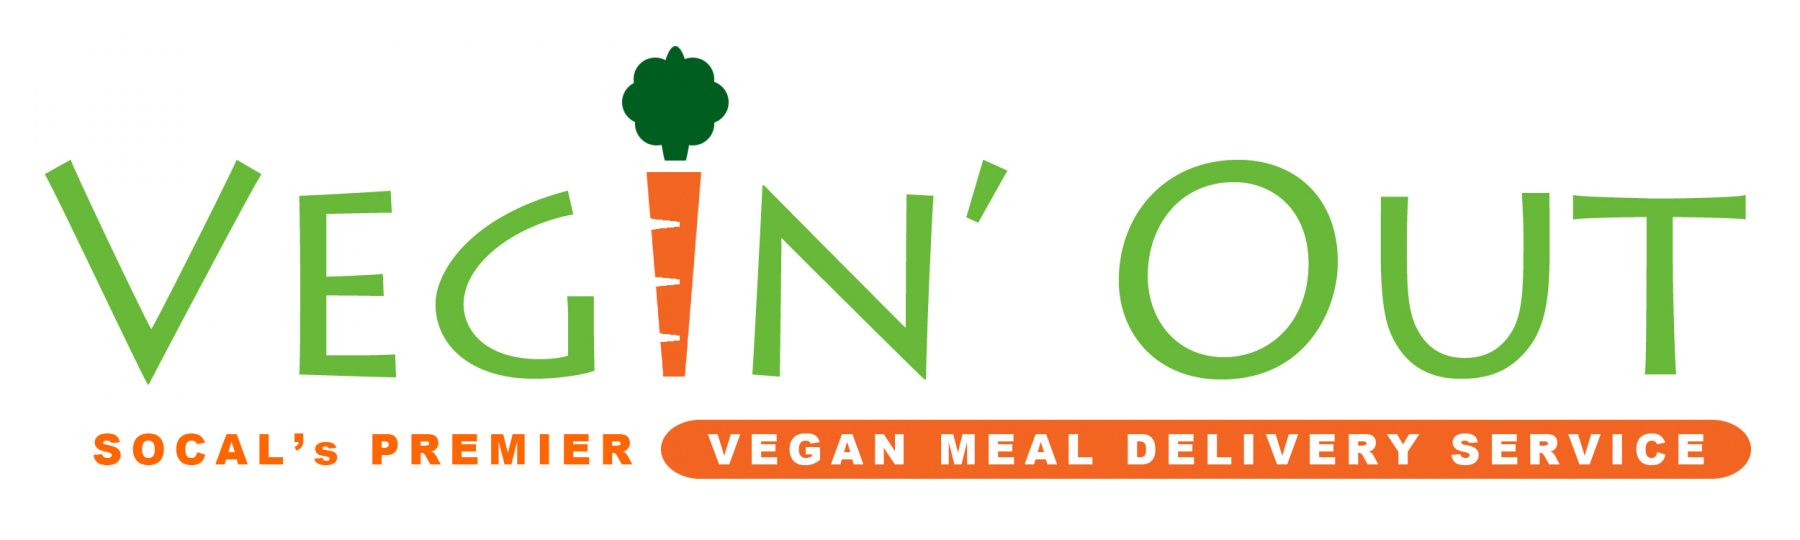 Vegan Meal Delivery Service in Southern CA from Vegin' Out!